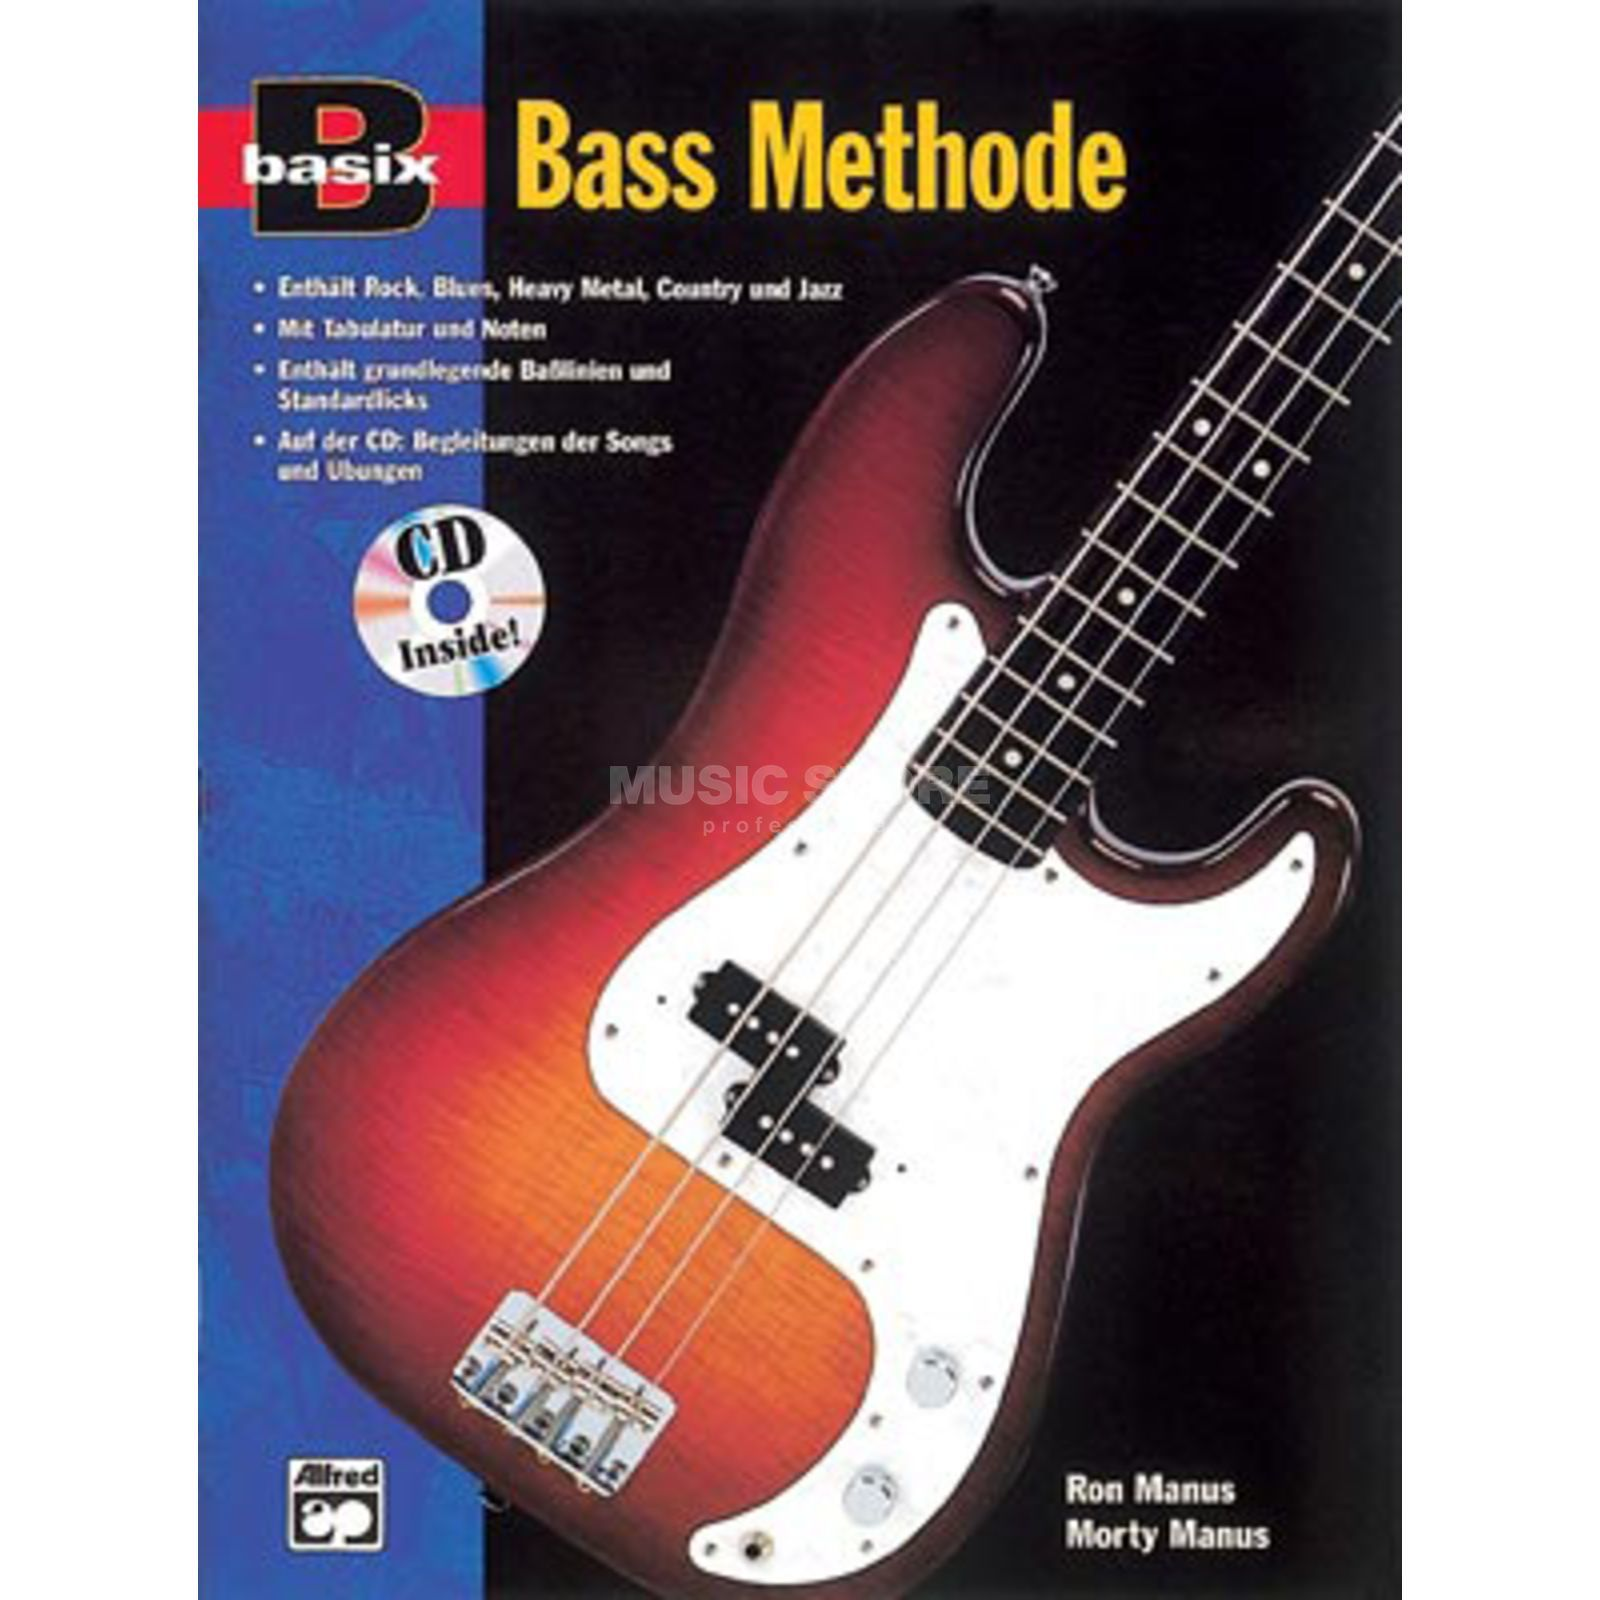 Alfred Music Basix Bass Methode Manus, Manus inkl. CD Produktbild